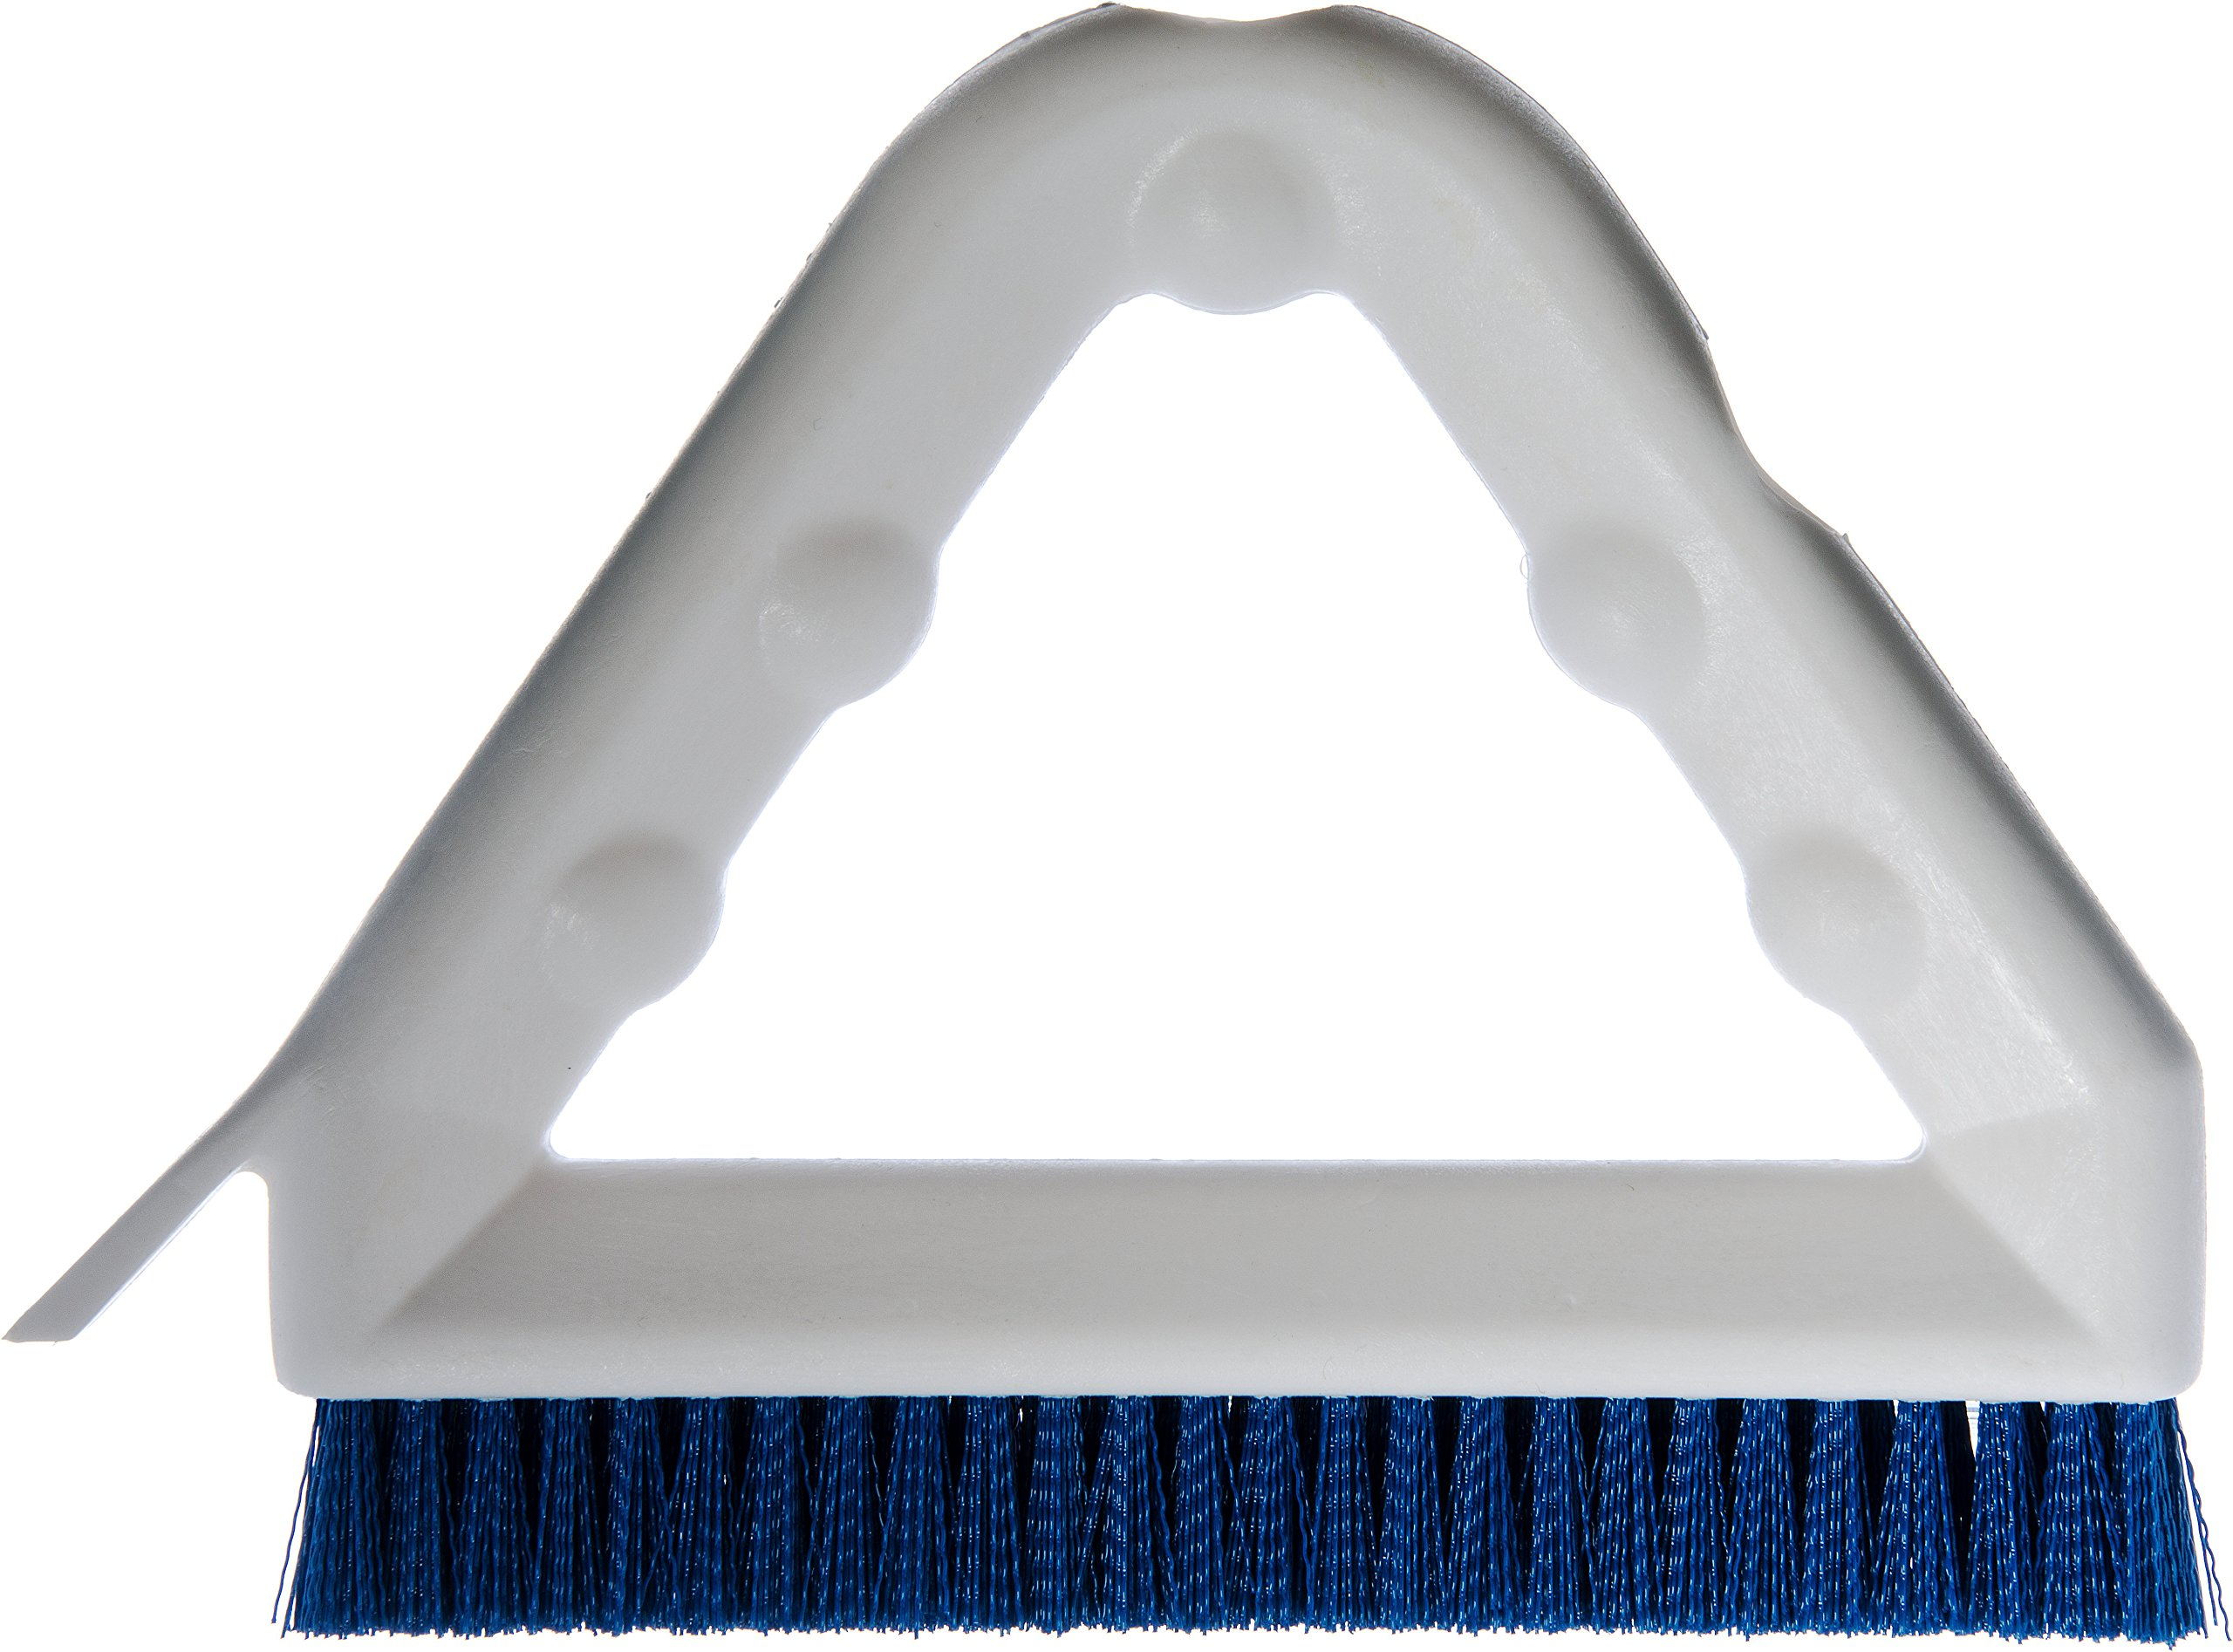 Carlisle 4132314 Sparta Tile and Grout Brush with Scraper, 9'', Blue by Carlisle (Image #5)